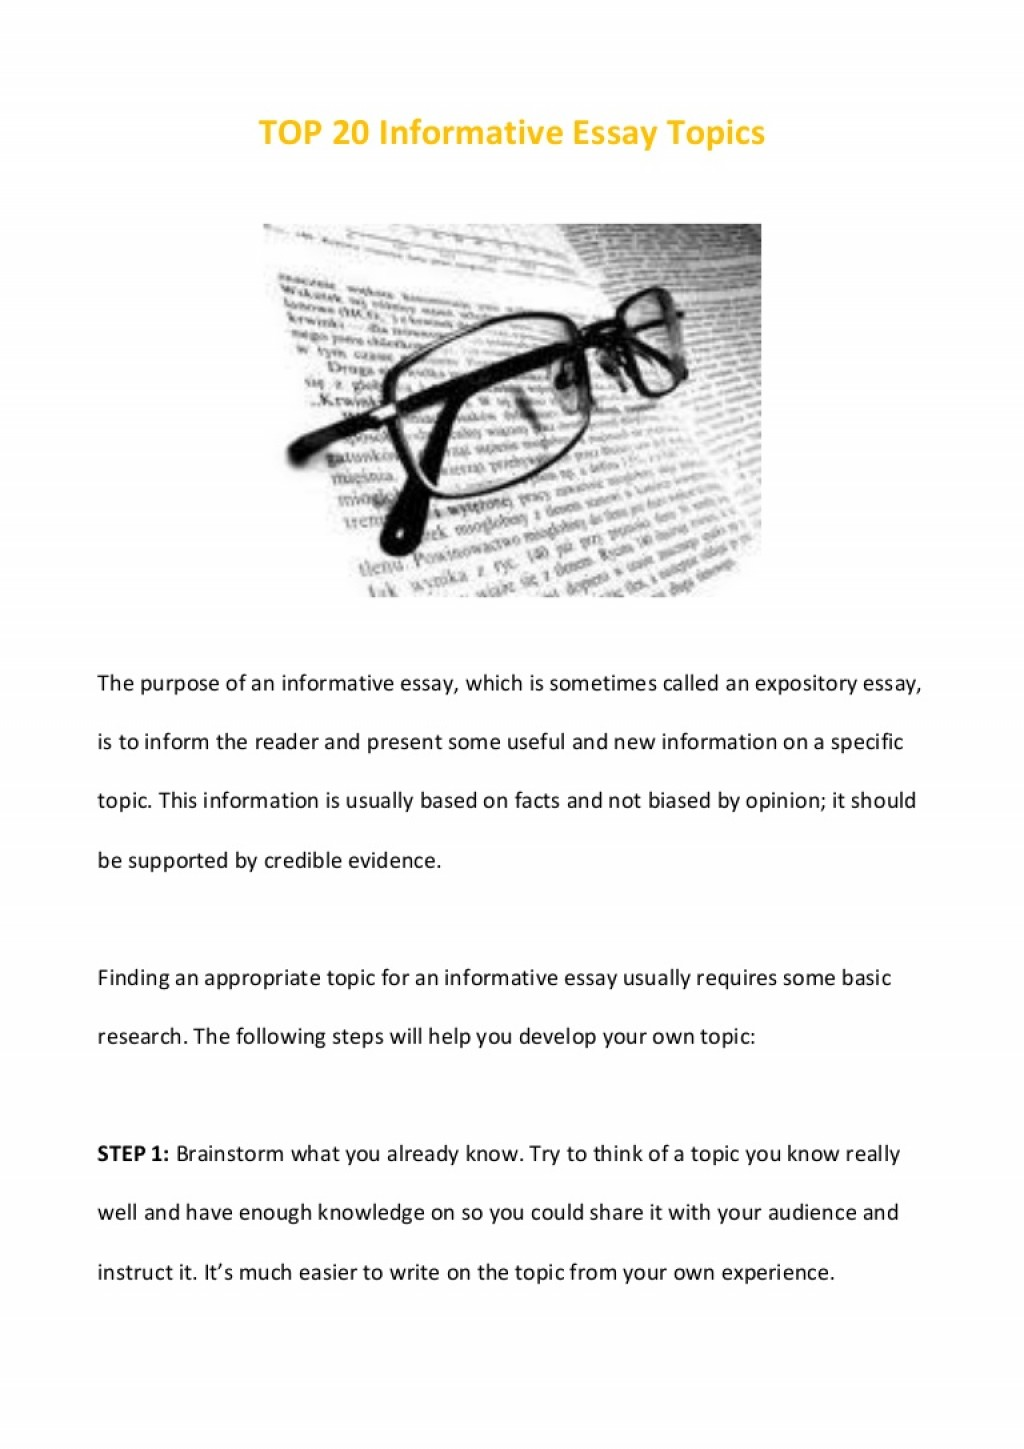 011 Essay Example Top20informativeessaytopics Phpapp02 Thumbnail Informative Remarkable Topics Prompt 4th Grade Prompts For High School Expository College Students Large